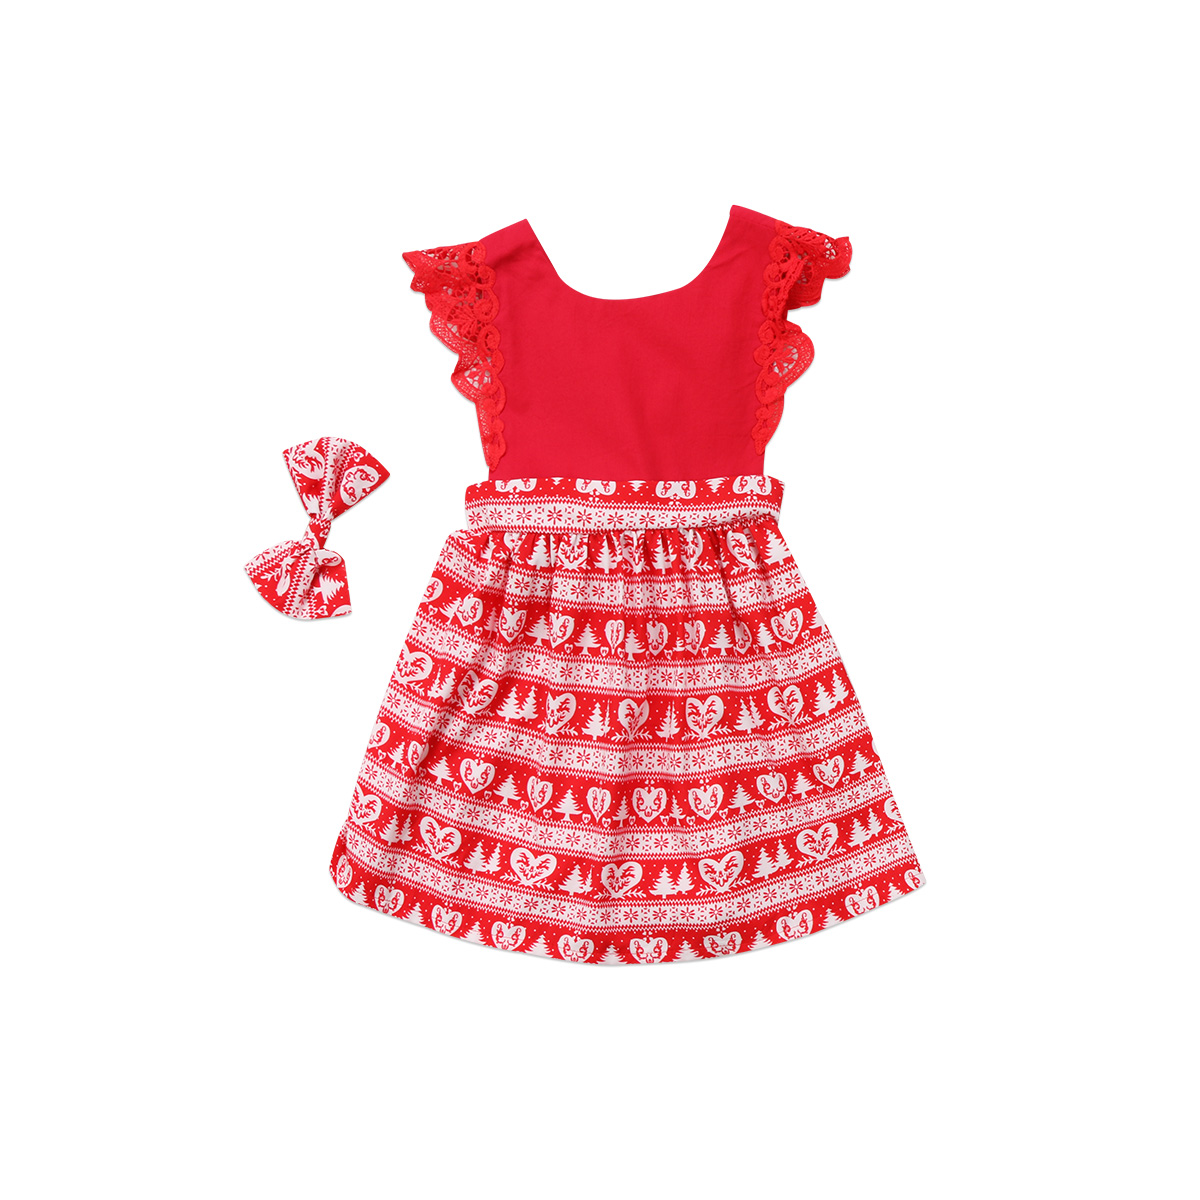 Girl Xmas Lace Sleeveless Cute Tutu Mini Dress Party Clothes Christmas Kids Baby Girls Toodler Kids Clothing Dresses neat christmas baby girl clothes girl dresses summer my little pony pretty lace children clothing tutu dress kids clothes lu8